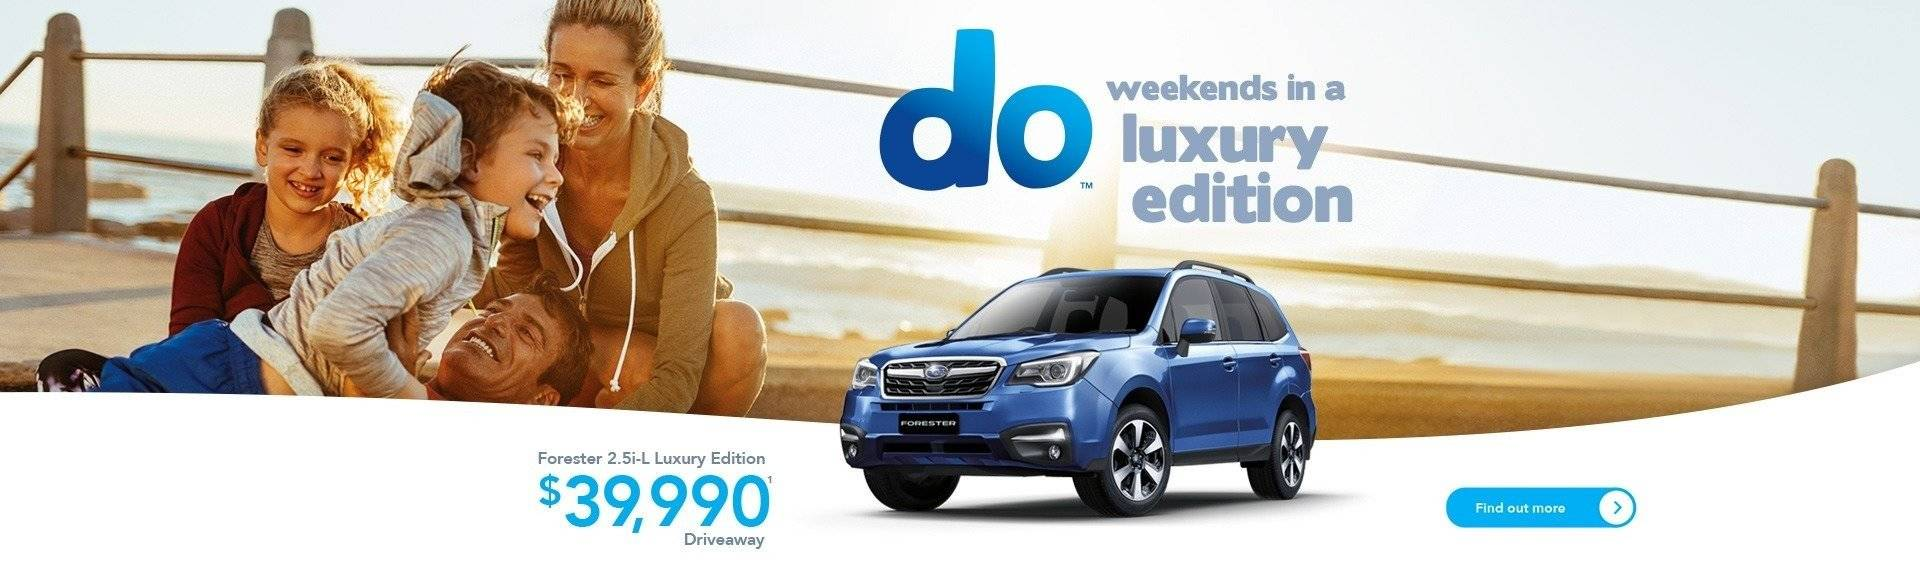 Forester Luxury Offer